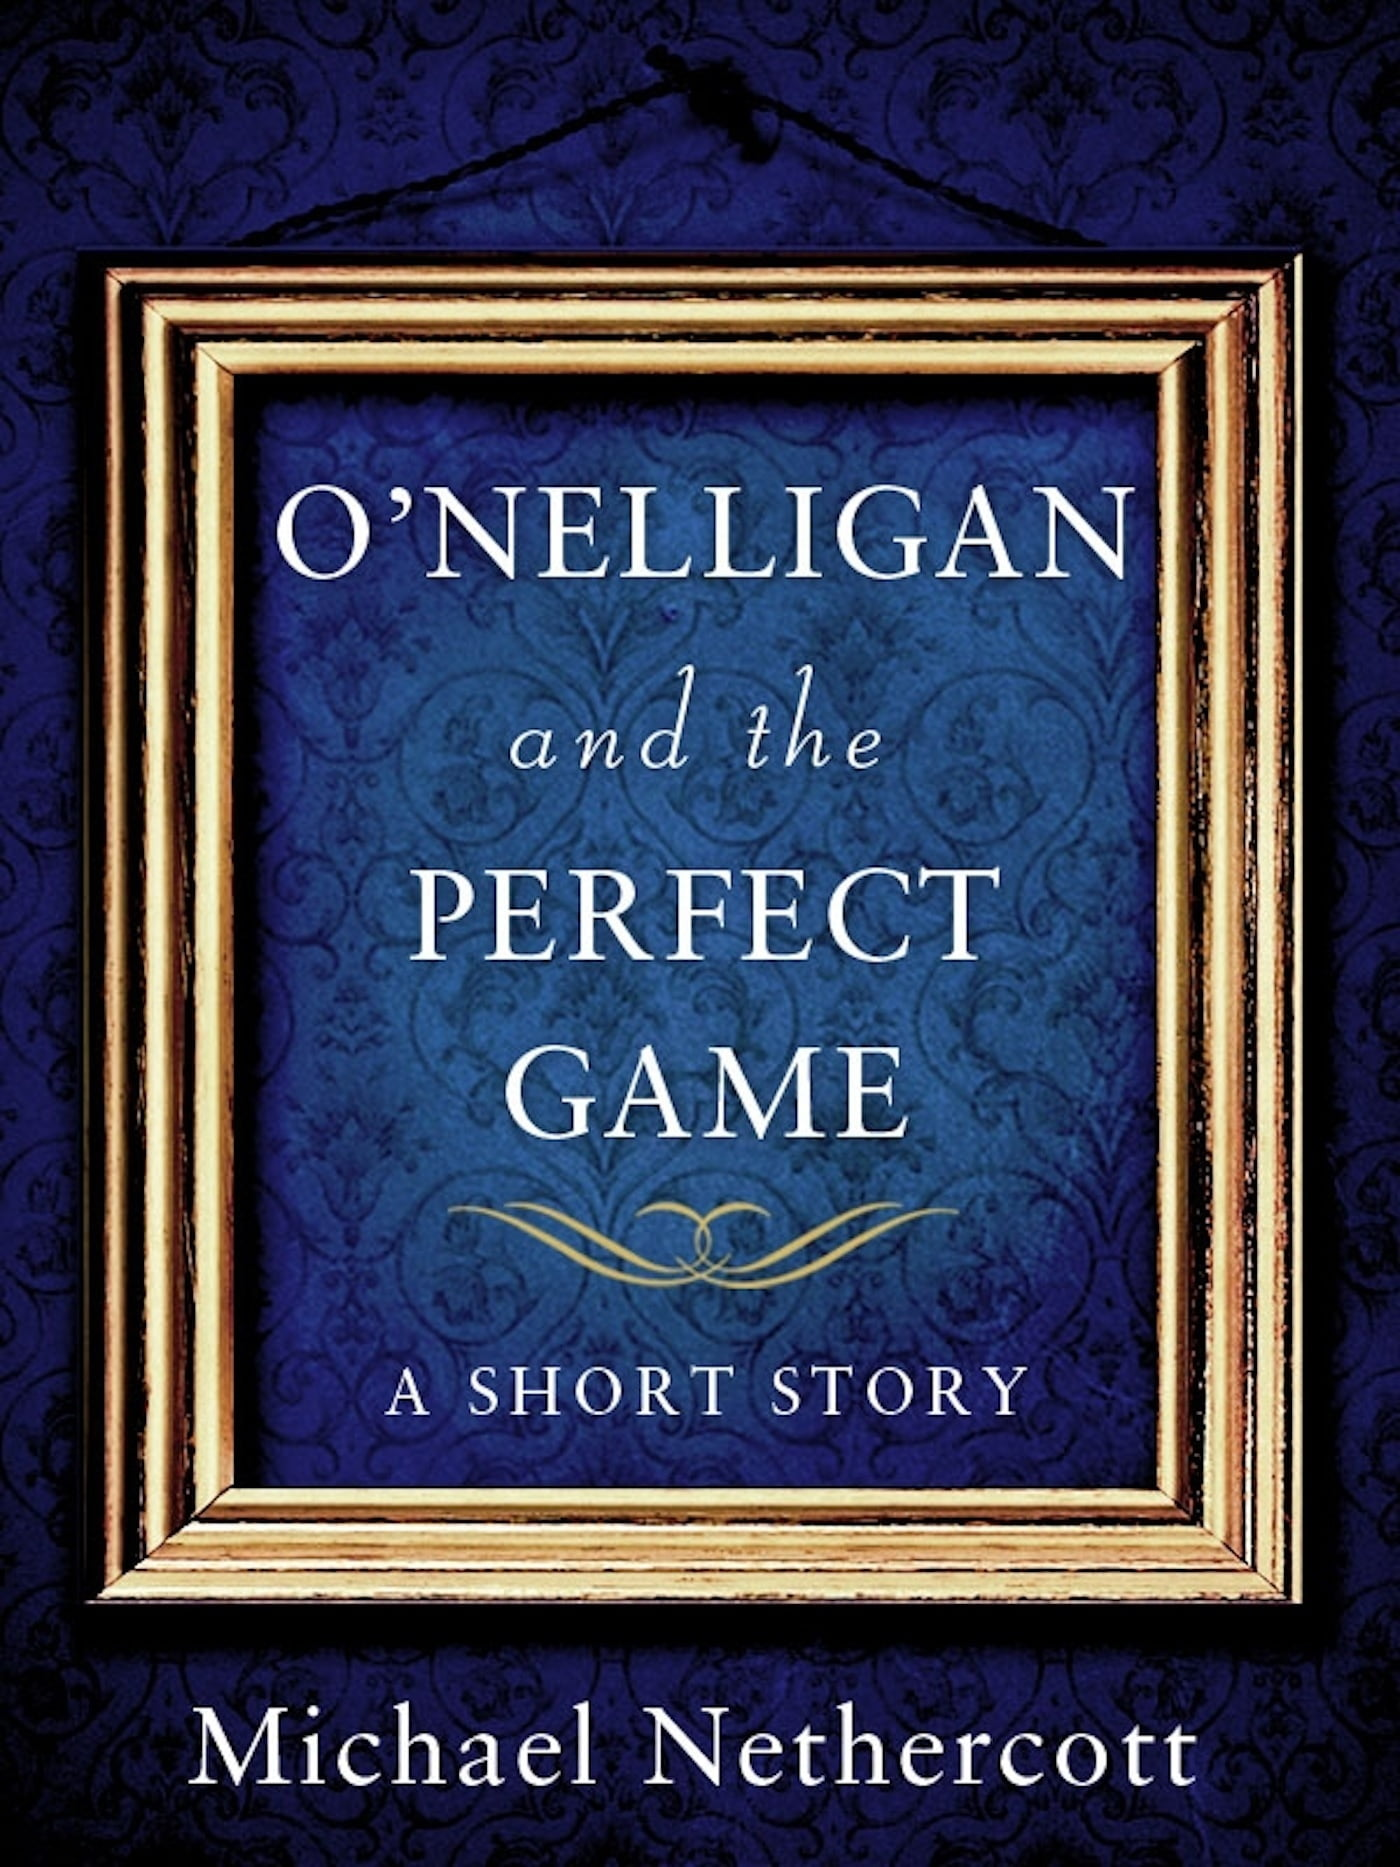 O'Nelligan and the Perfect Game de Michael Nethercott PDF